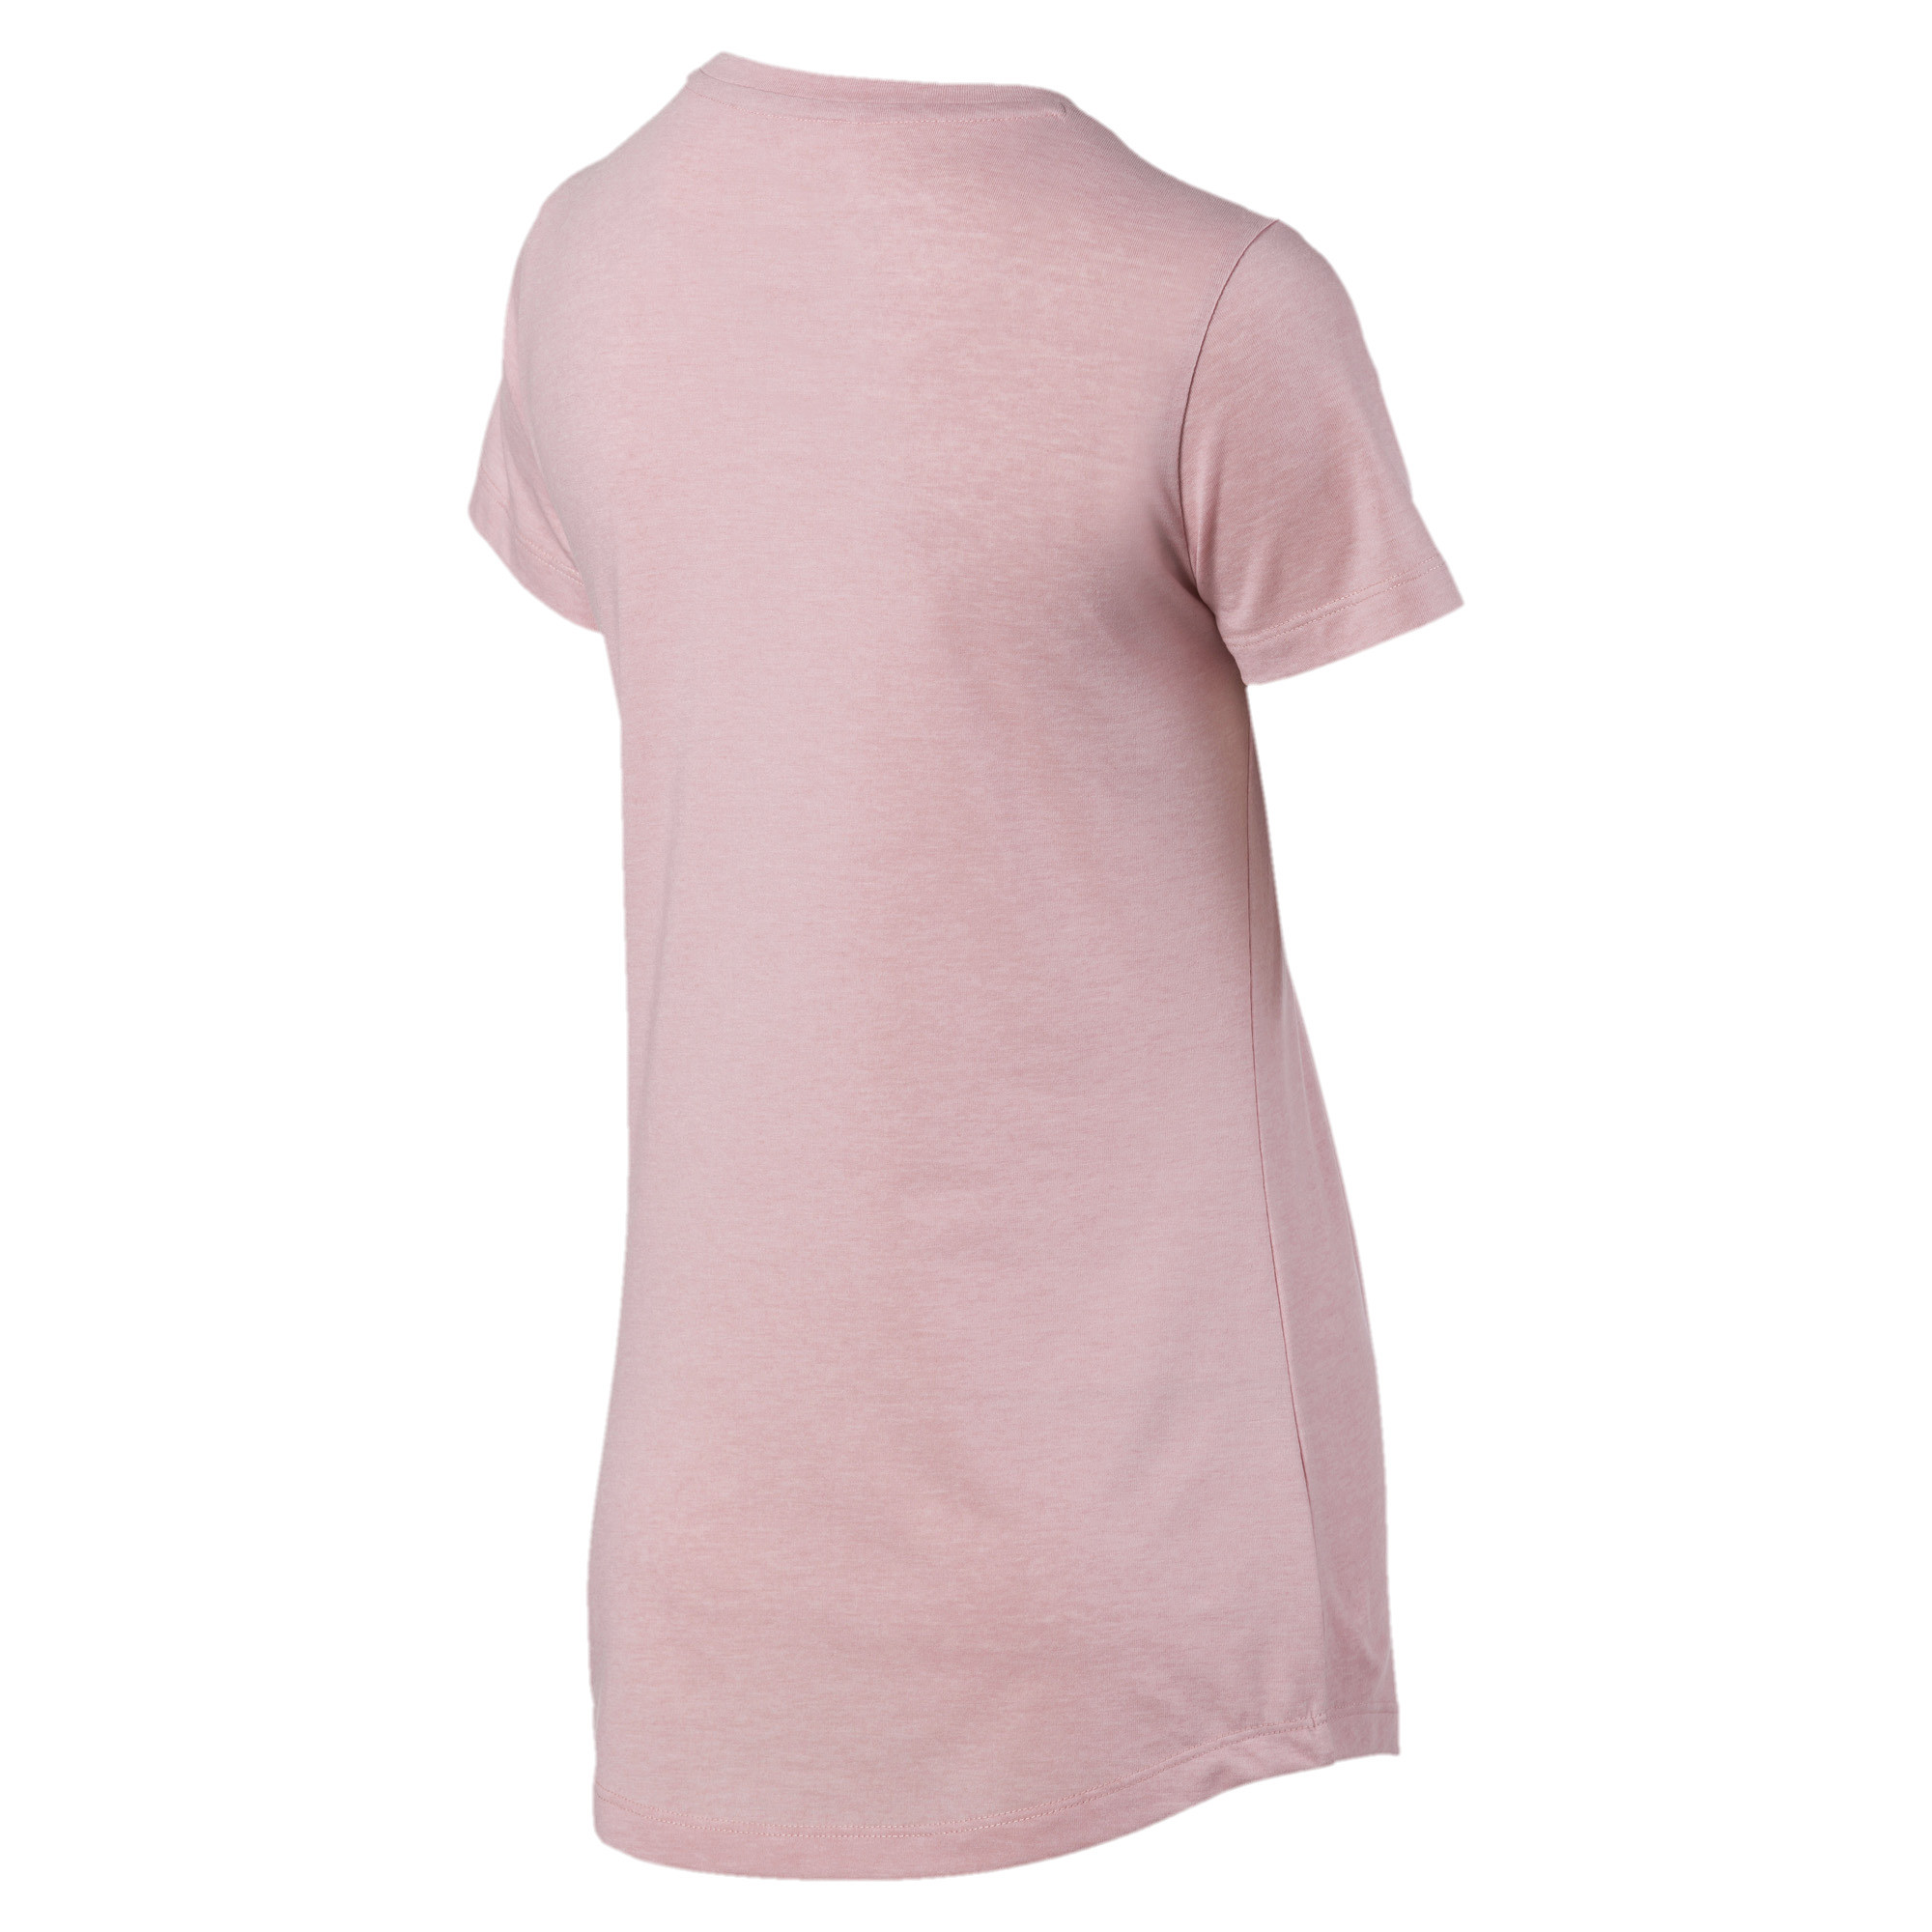 PUMA-Essentials-Women-039-s-Heather-Tee-Women-Tee-Basics thumbnail 3